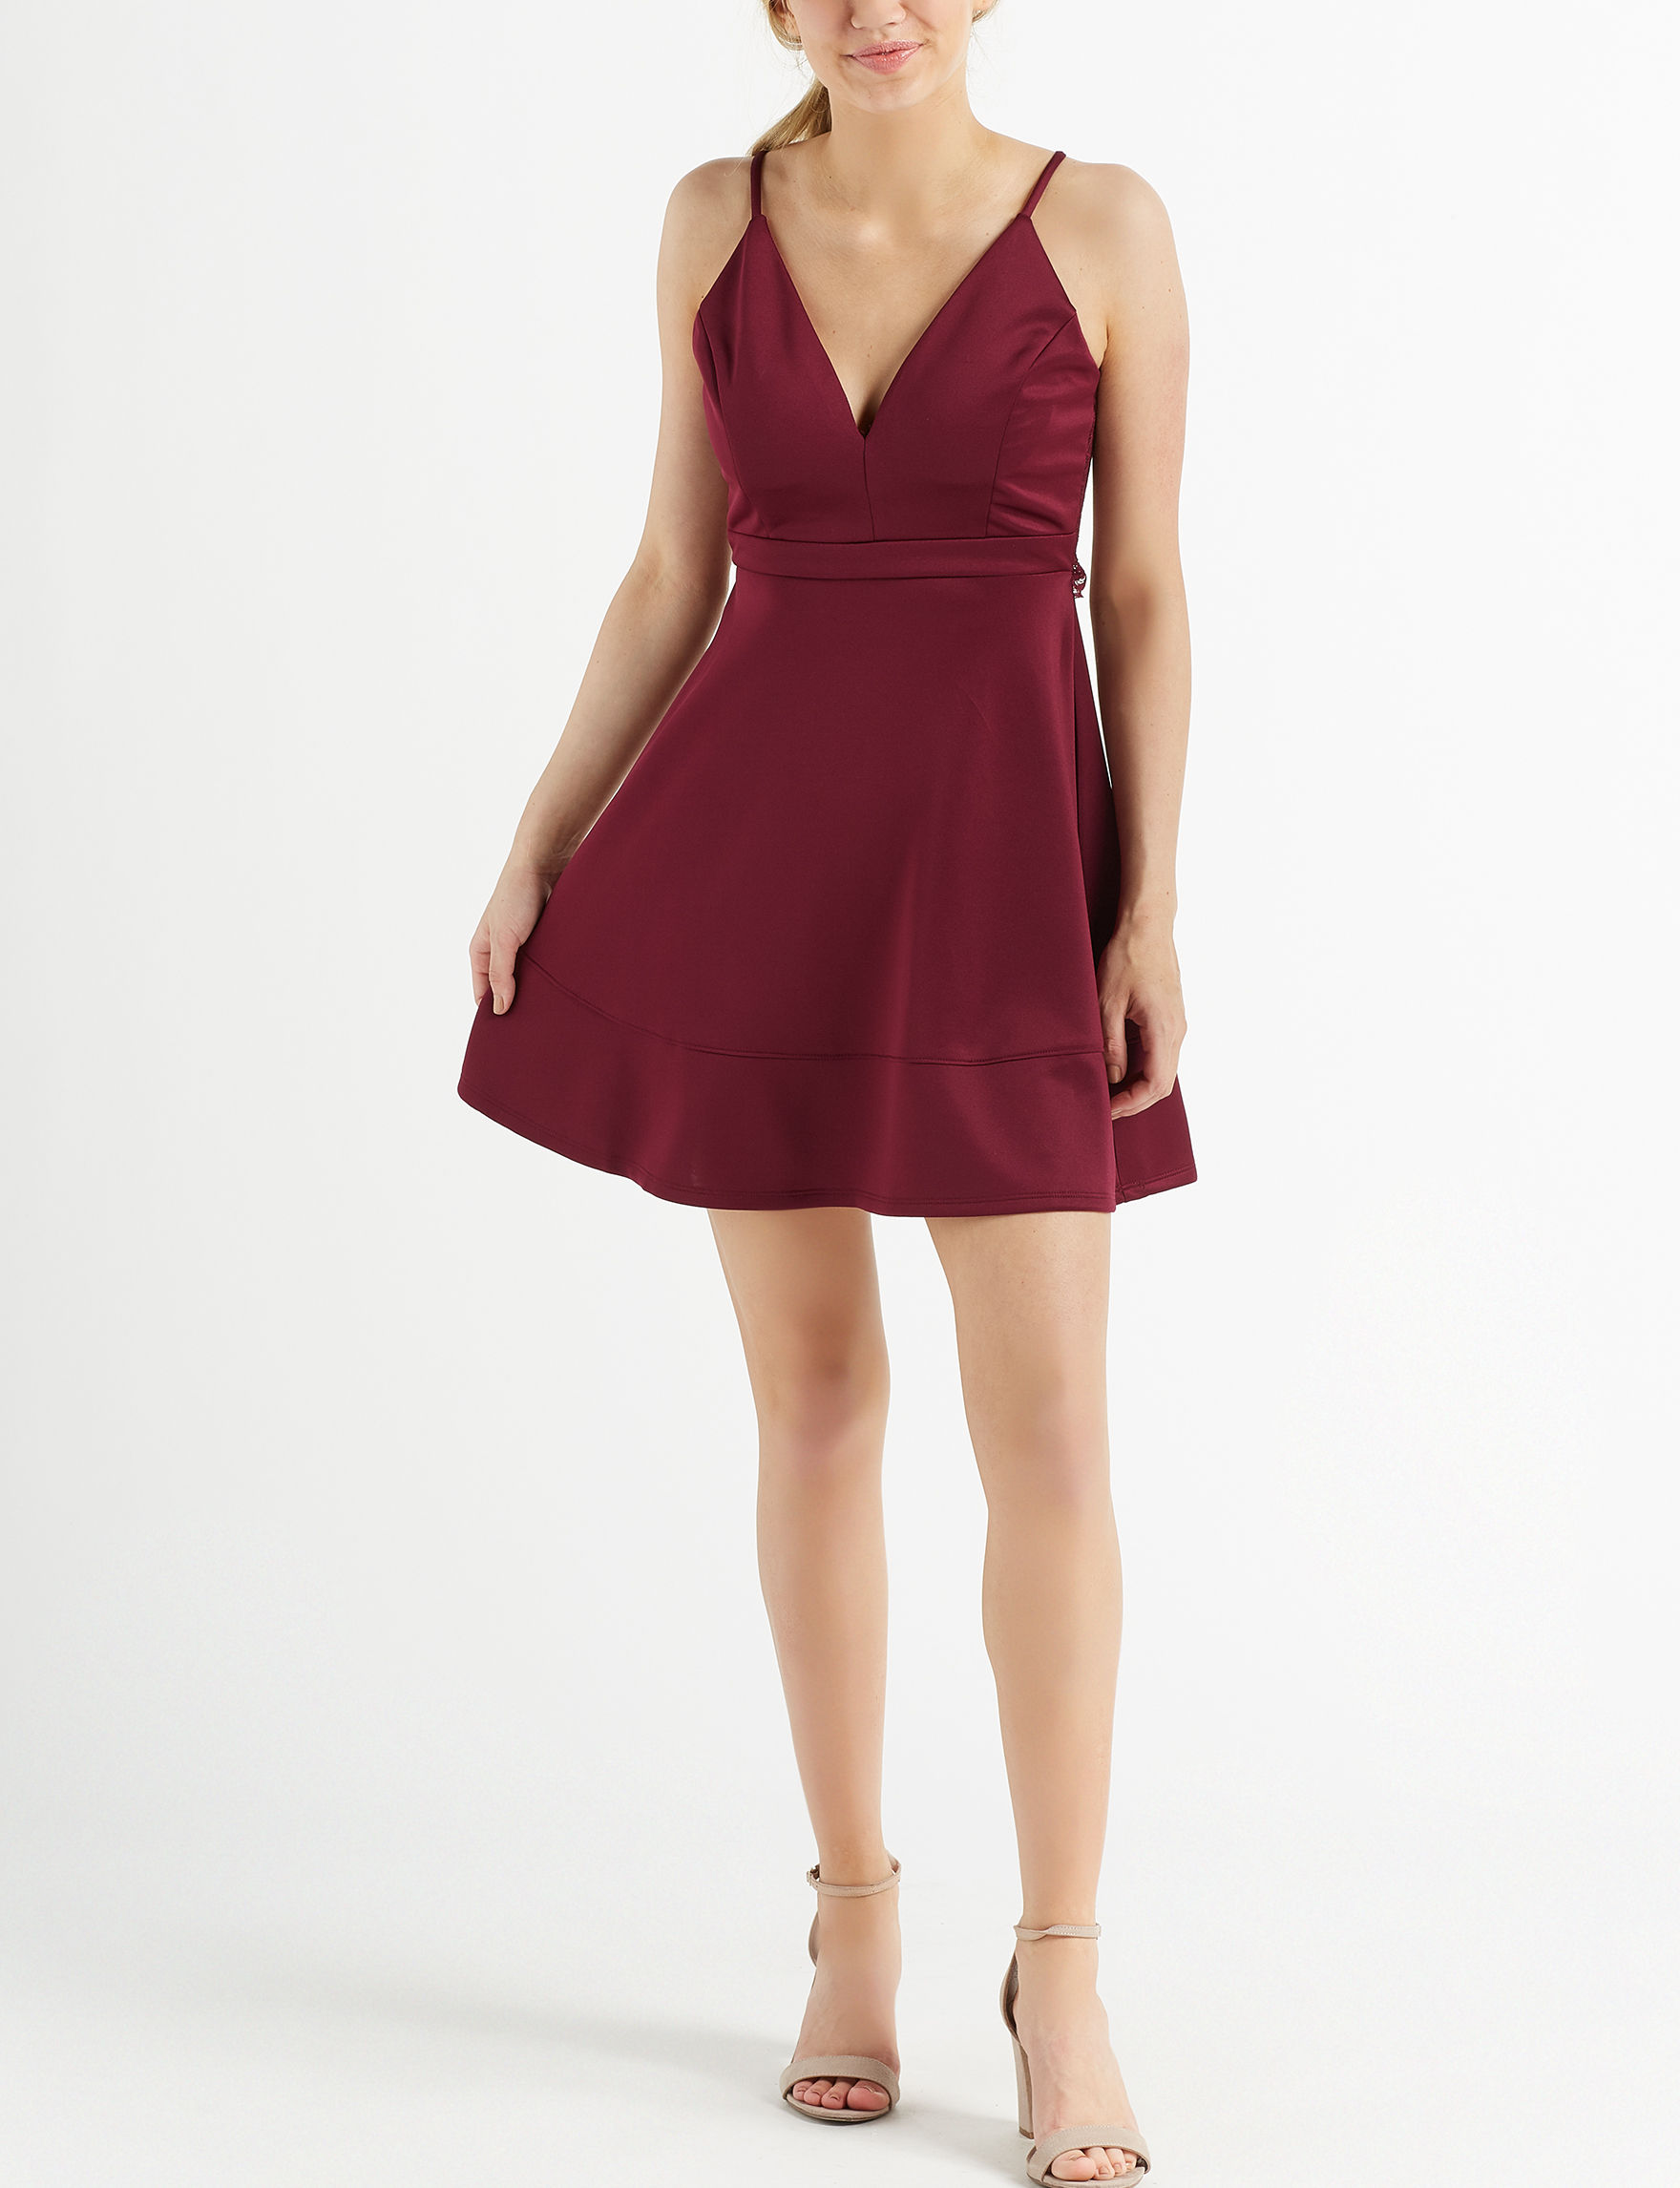 Emerald Sundae Burgundy Cocktail & Party Fit & Flare Dresses